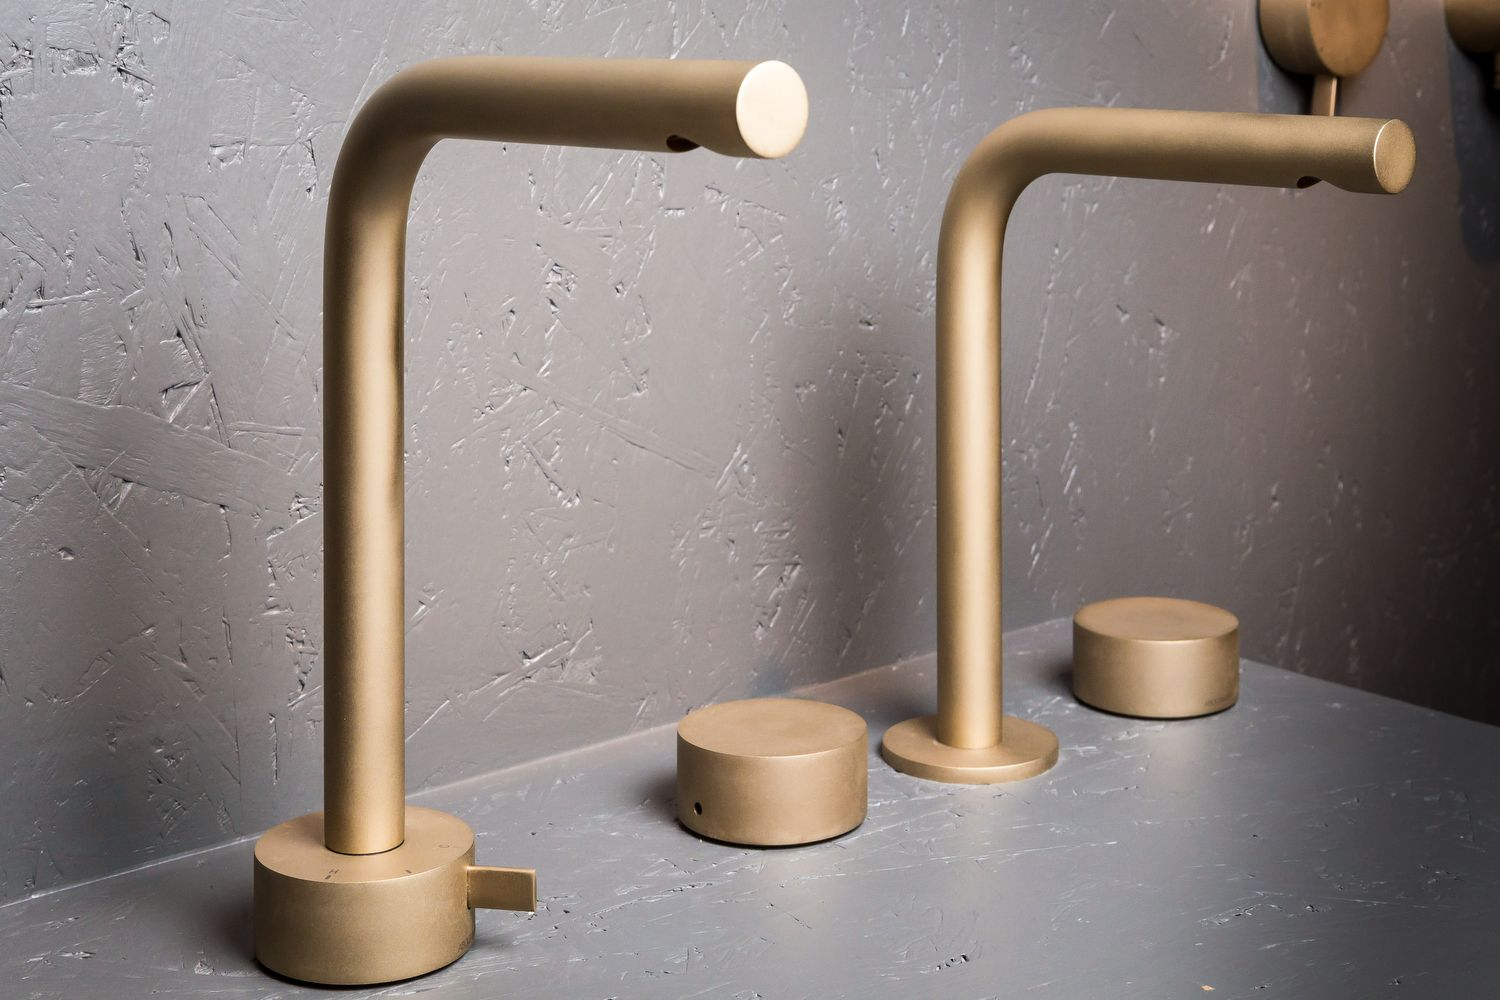 faucet fantini a two one collections seller best with expands and material faucets for extension line new its portfolio